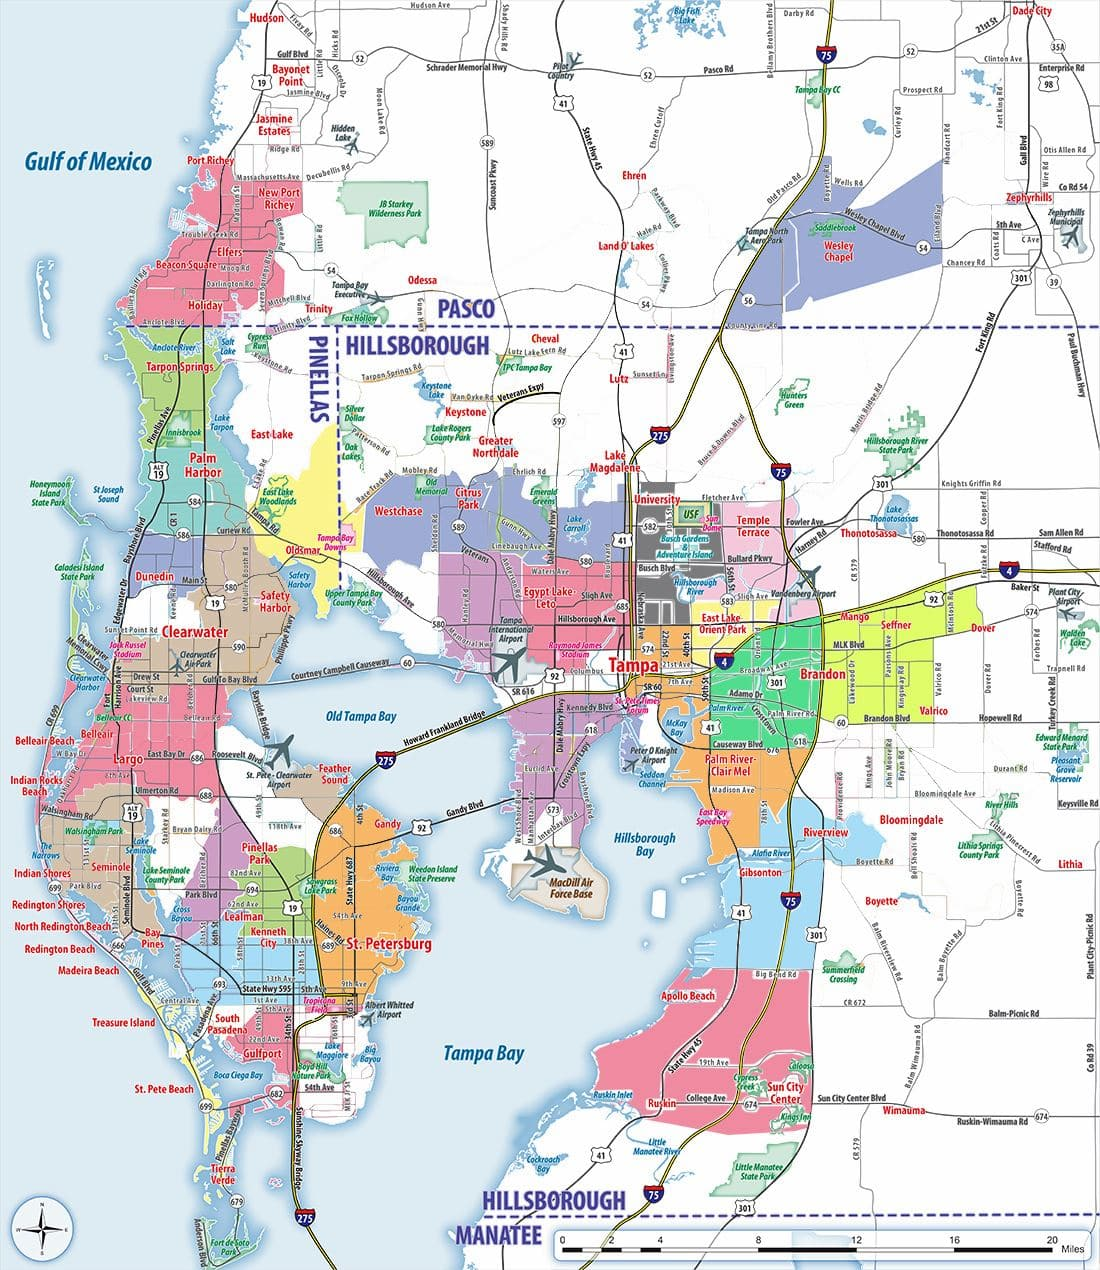 Tampa Fl Zip Code Map Tampa Zip Codes | Tampa Zip Code Map, Zip Codes Tampa, Florida